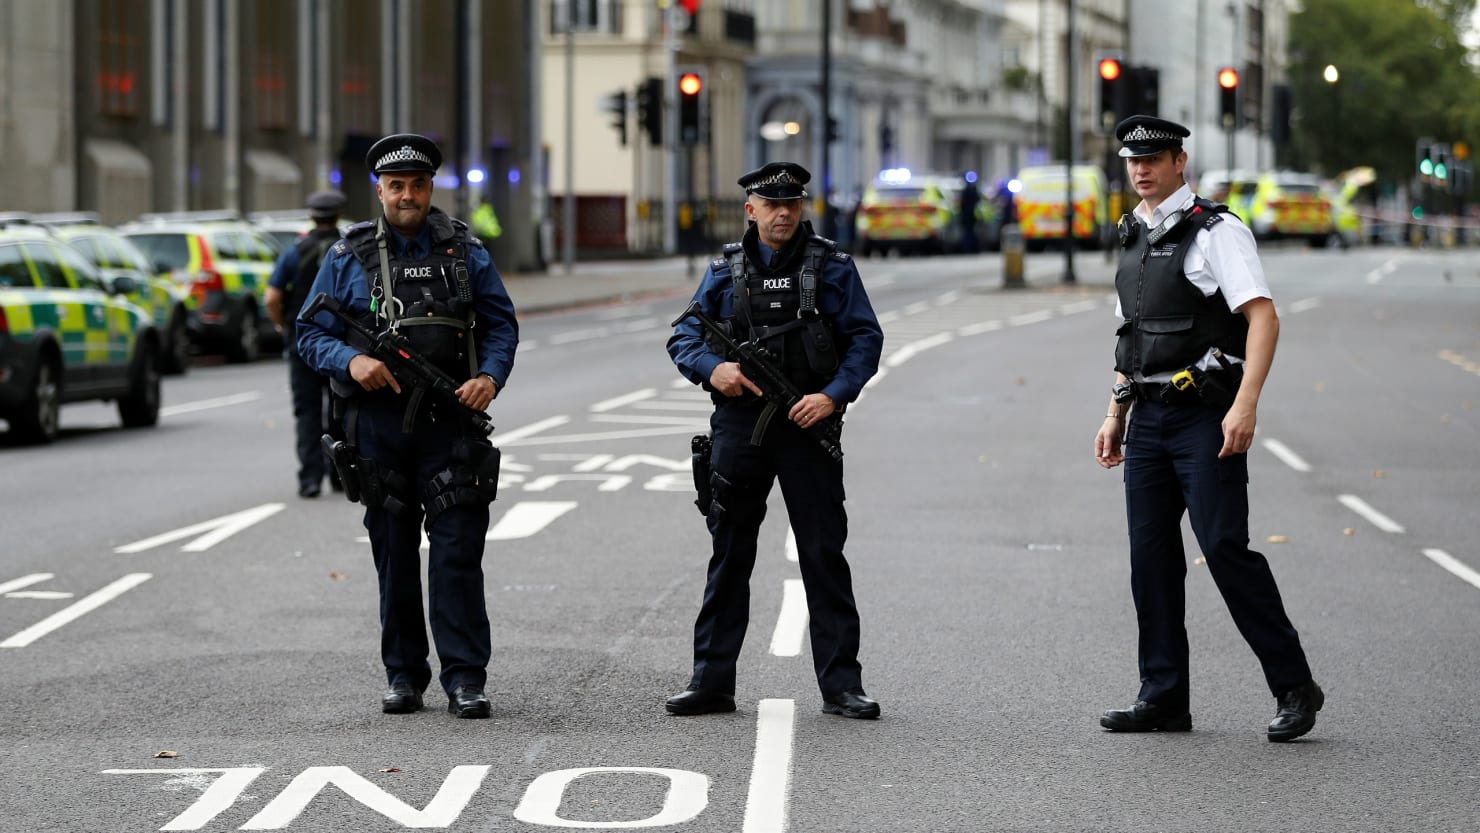 Pedestrians  >> Several Injured As Car Strikes Pedestrians Near London Museum The